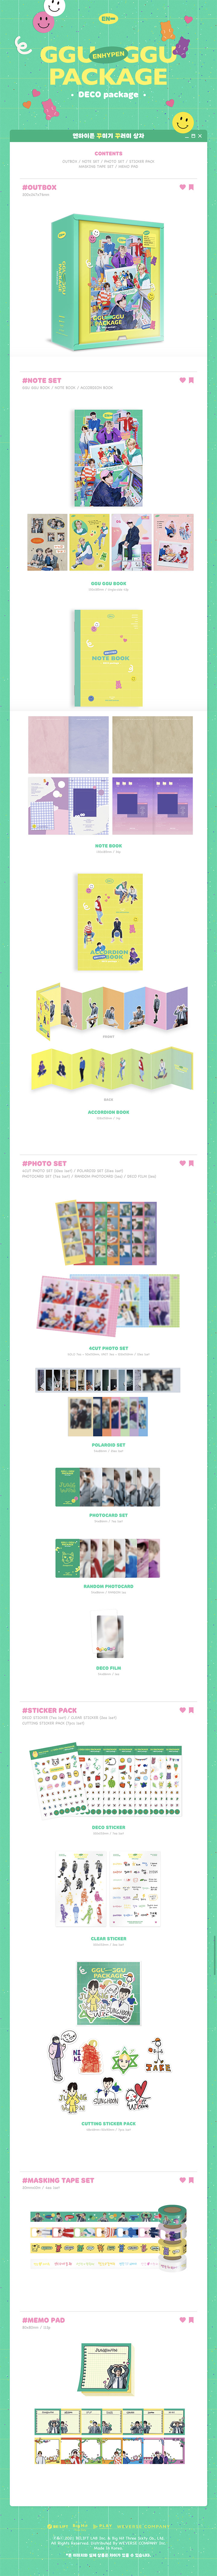 ENHYPEN GGU GGU PACKAGE (DECO PACKAGE) + Weverse Gift